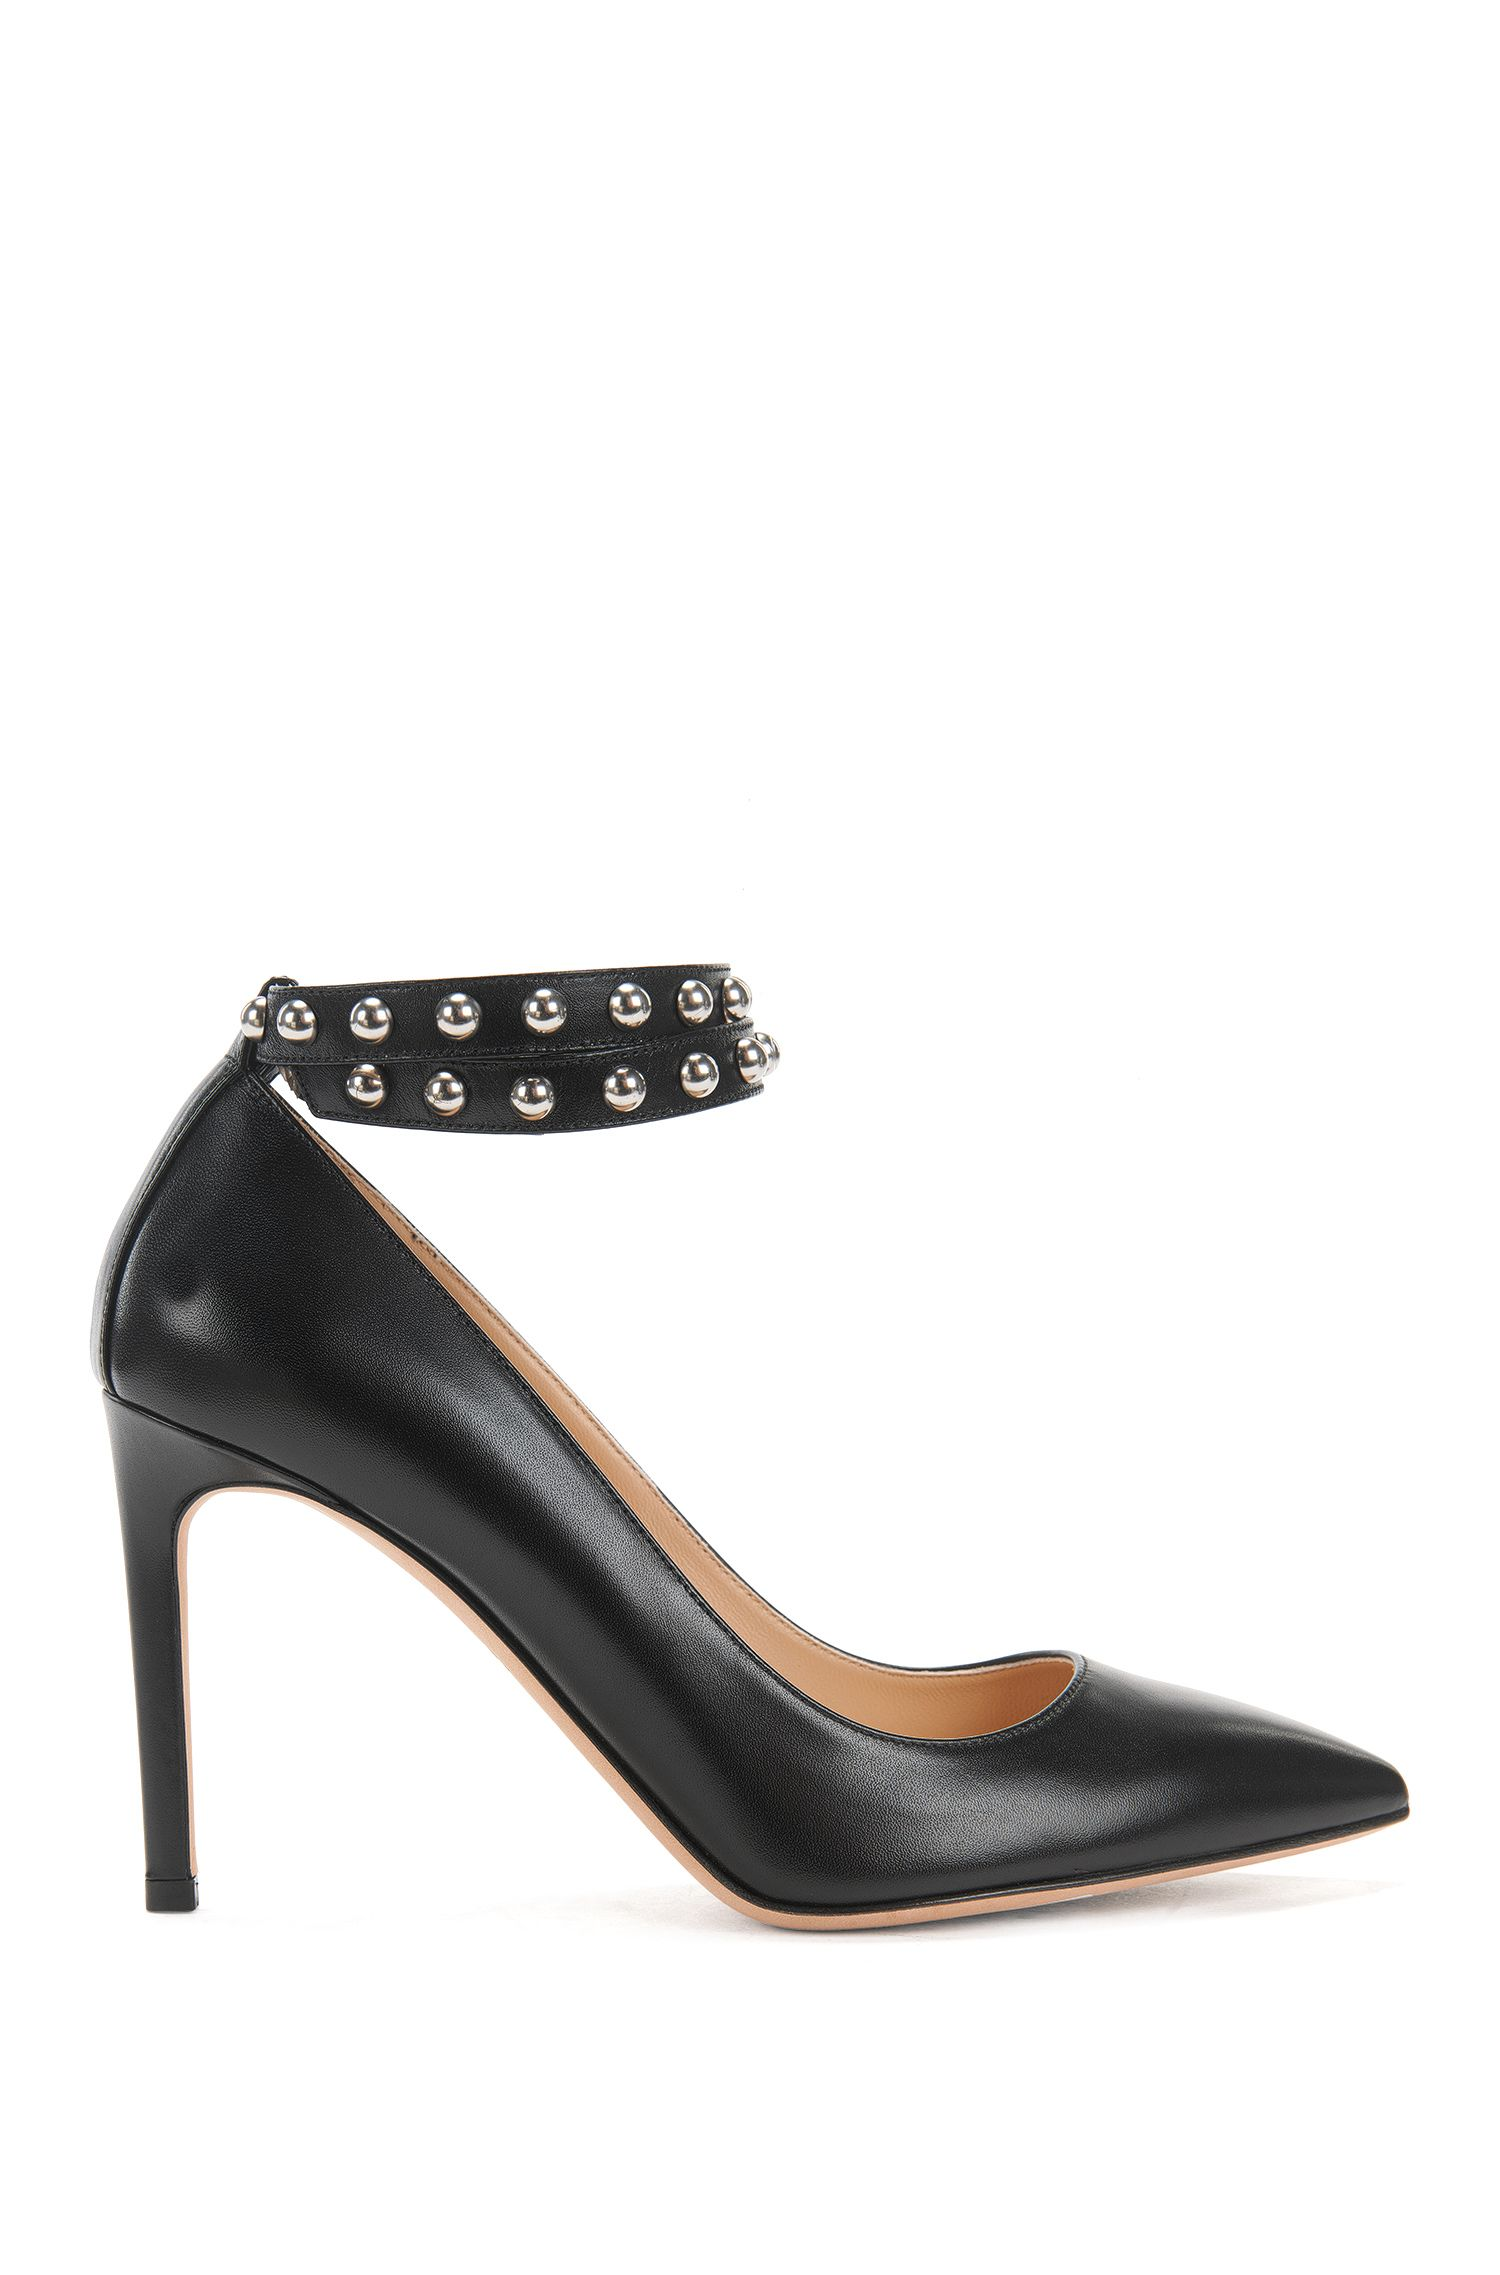 Leather pumps with studded ankle strap